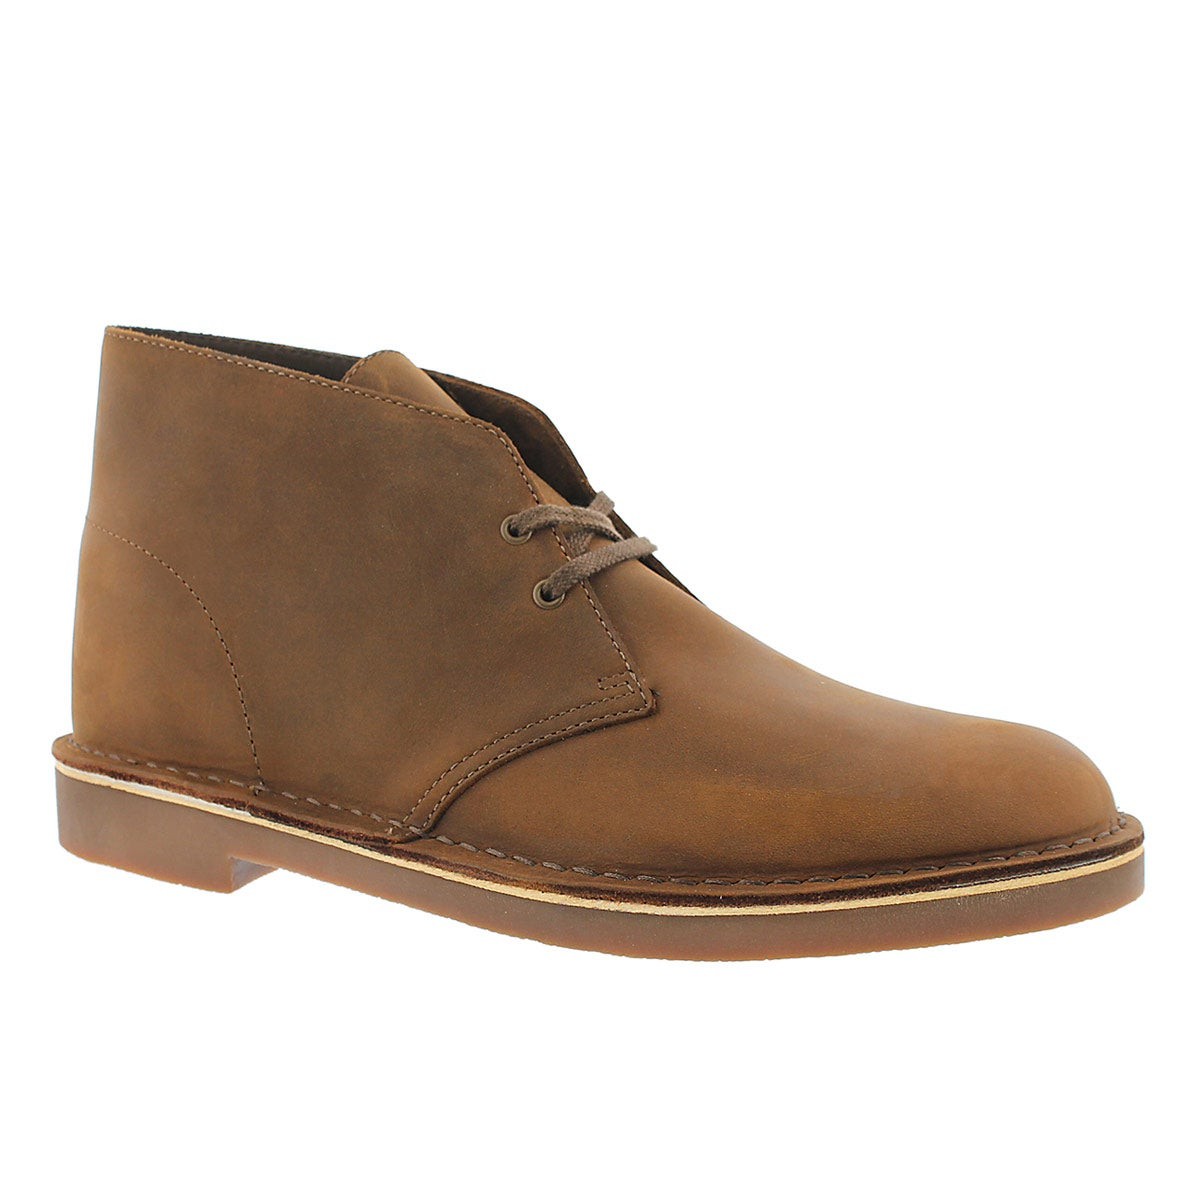 Men's BUSHACRE 2 DESERT BOOT leather chukkas